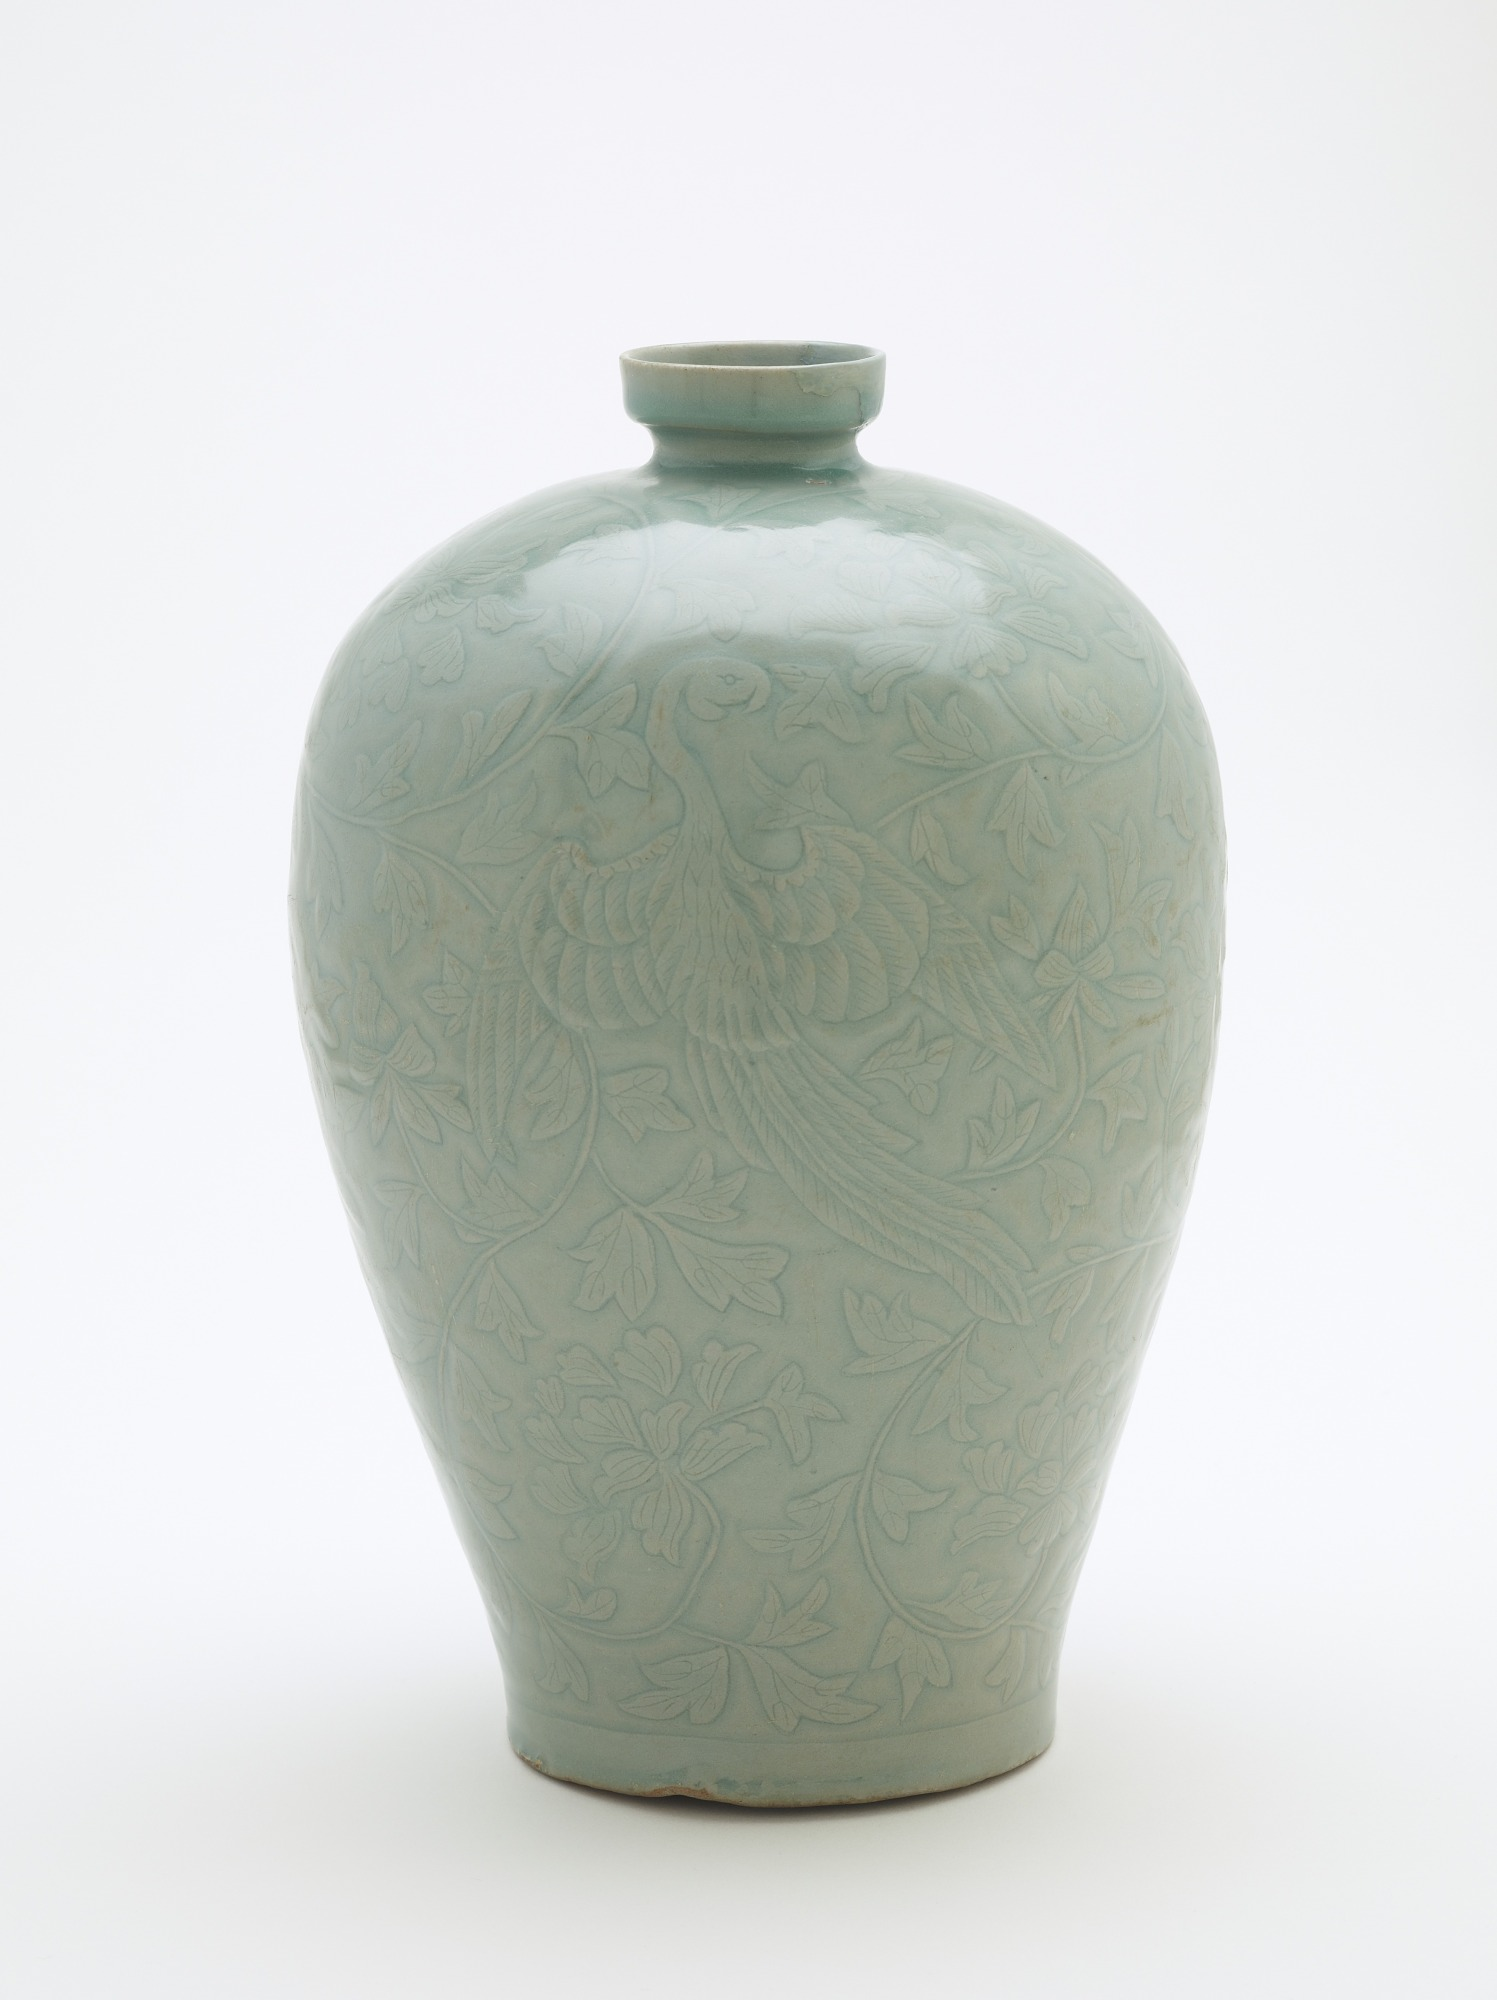 profile: Bottle with carved and incised design of two phoenixes and peony vinescrolls